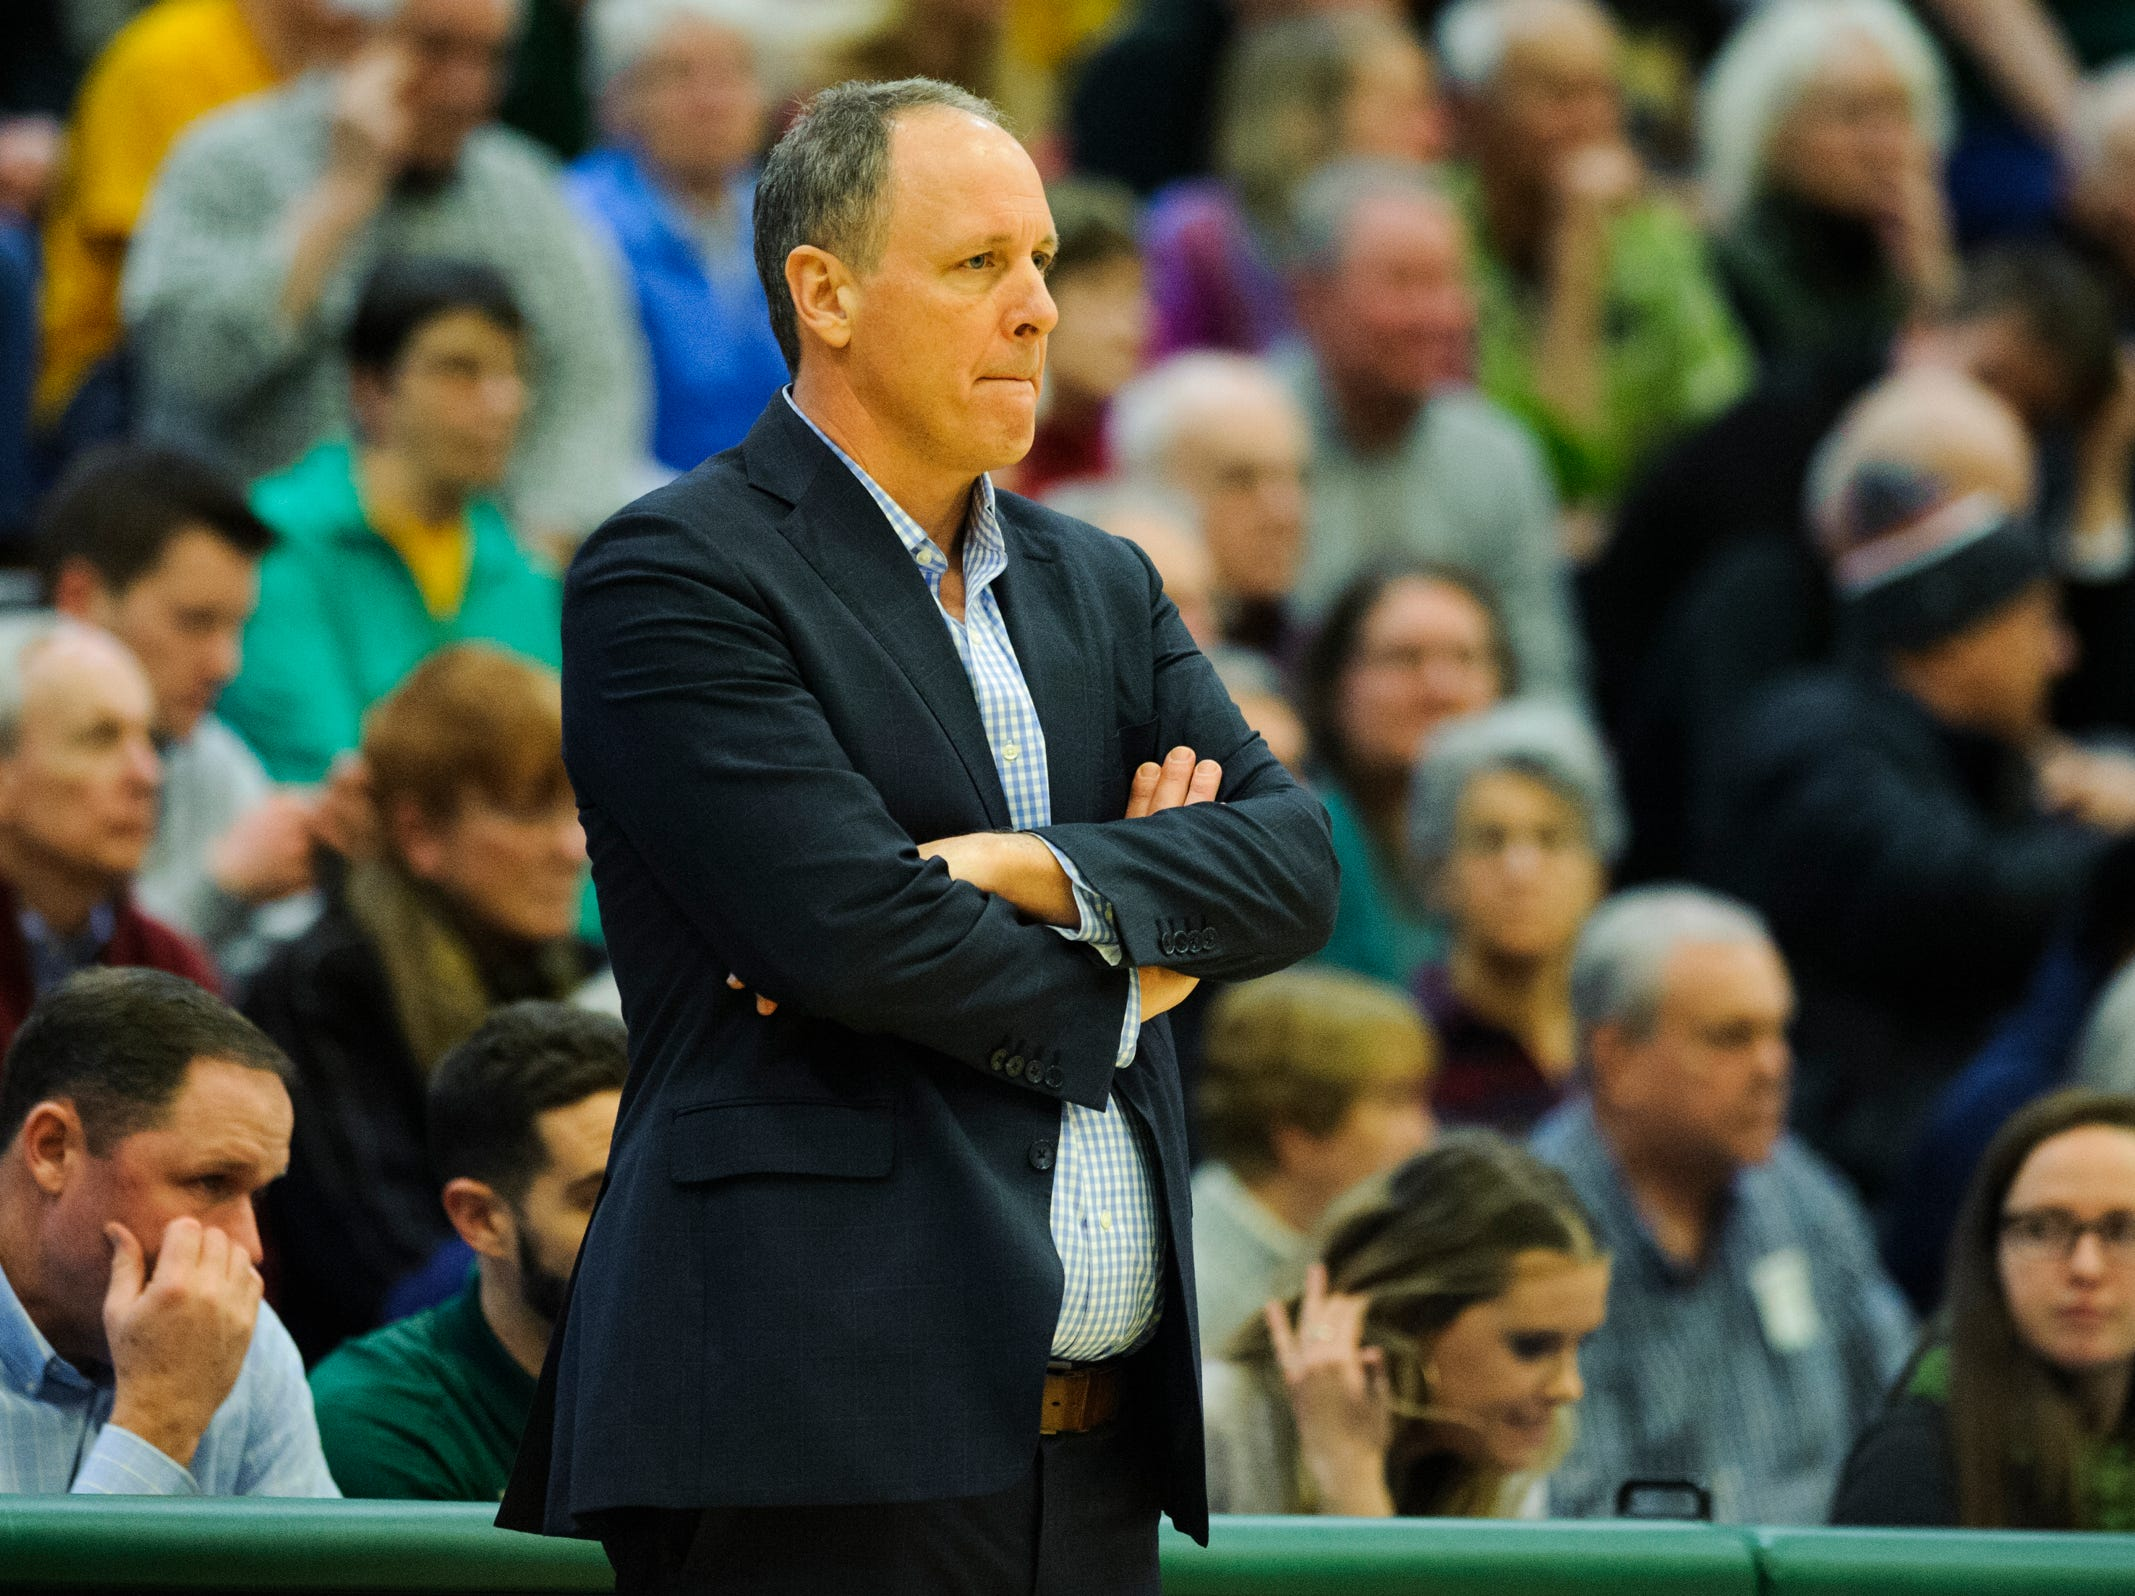 Vermont head coach John Becker watches the action on the court during the men's basketball game between the UMBC Retrievers and the Vermont Catamounts at Patrick Gym on Wednesday night January 23, 2019 in Burlington, Vermont.